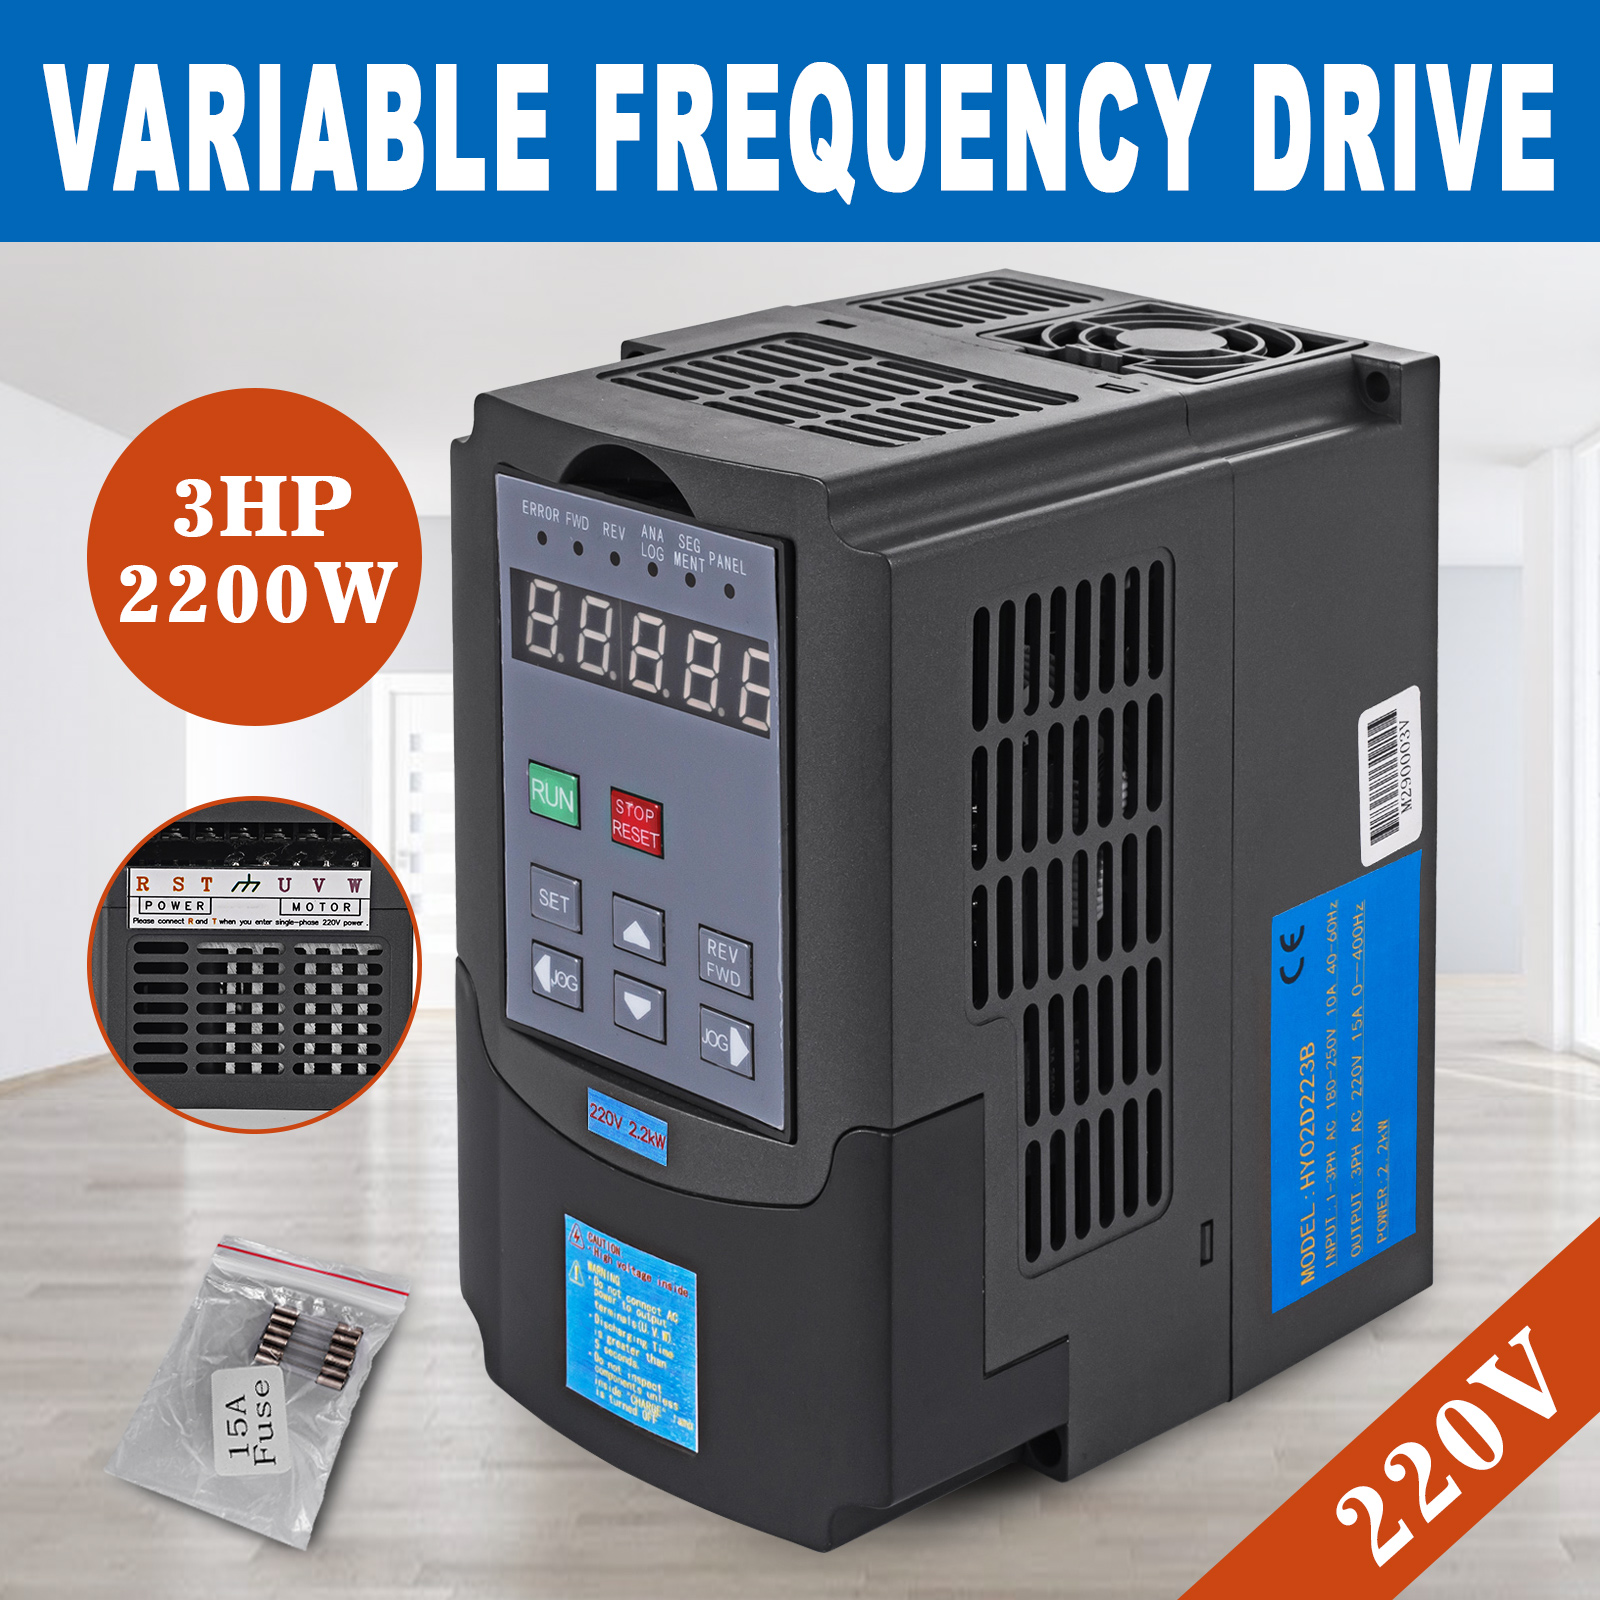 Details about 2 2KW 3HP VFD 10A 220V SINGLE PHASE SPEED VARIABLE FREQUENCY  DRIVE INVERTER